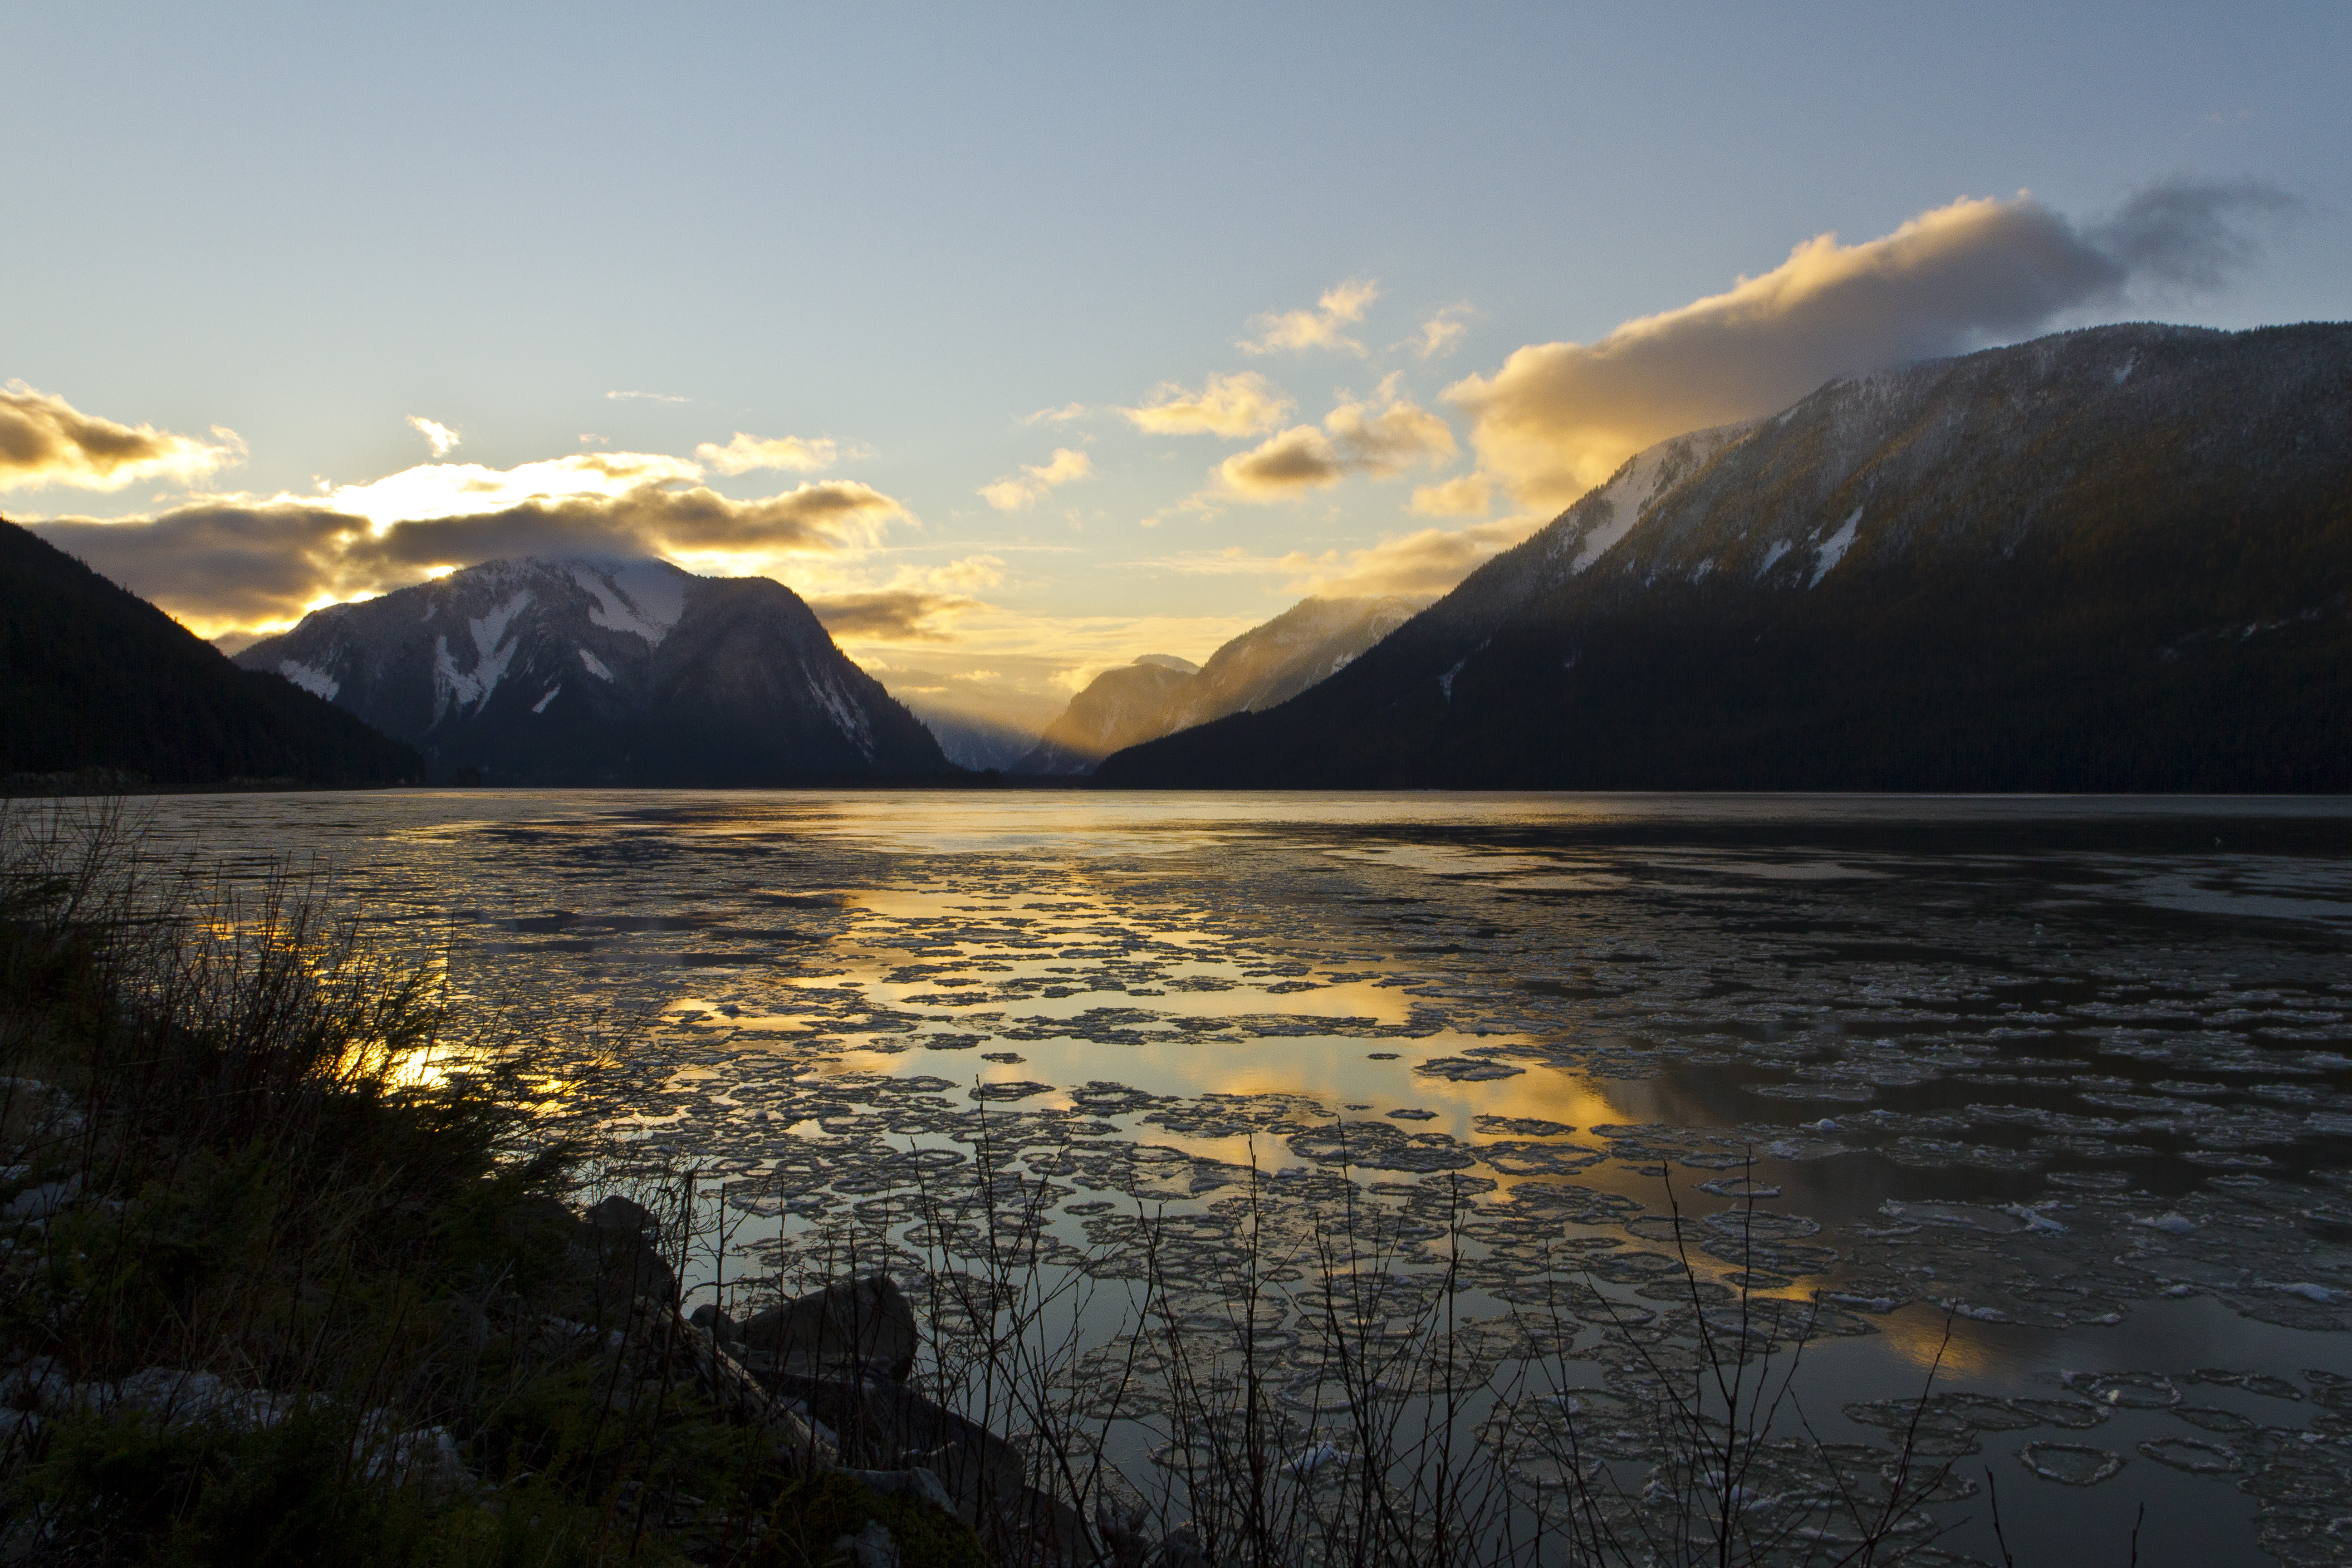 Skeena River, Photo: Mike R Turner (All Rights Reserved)